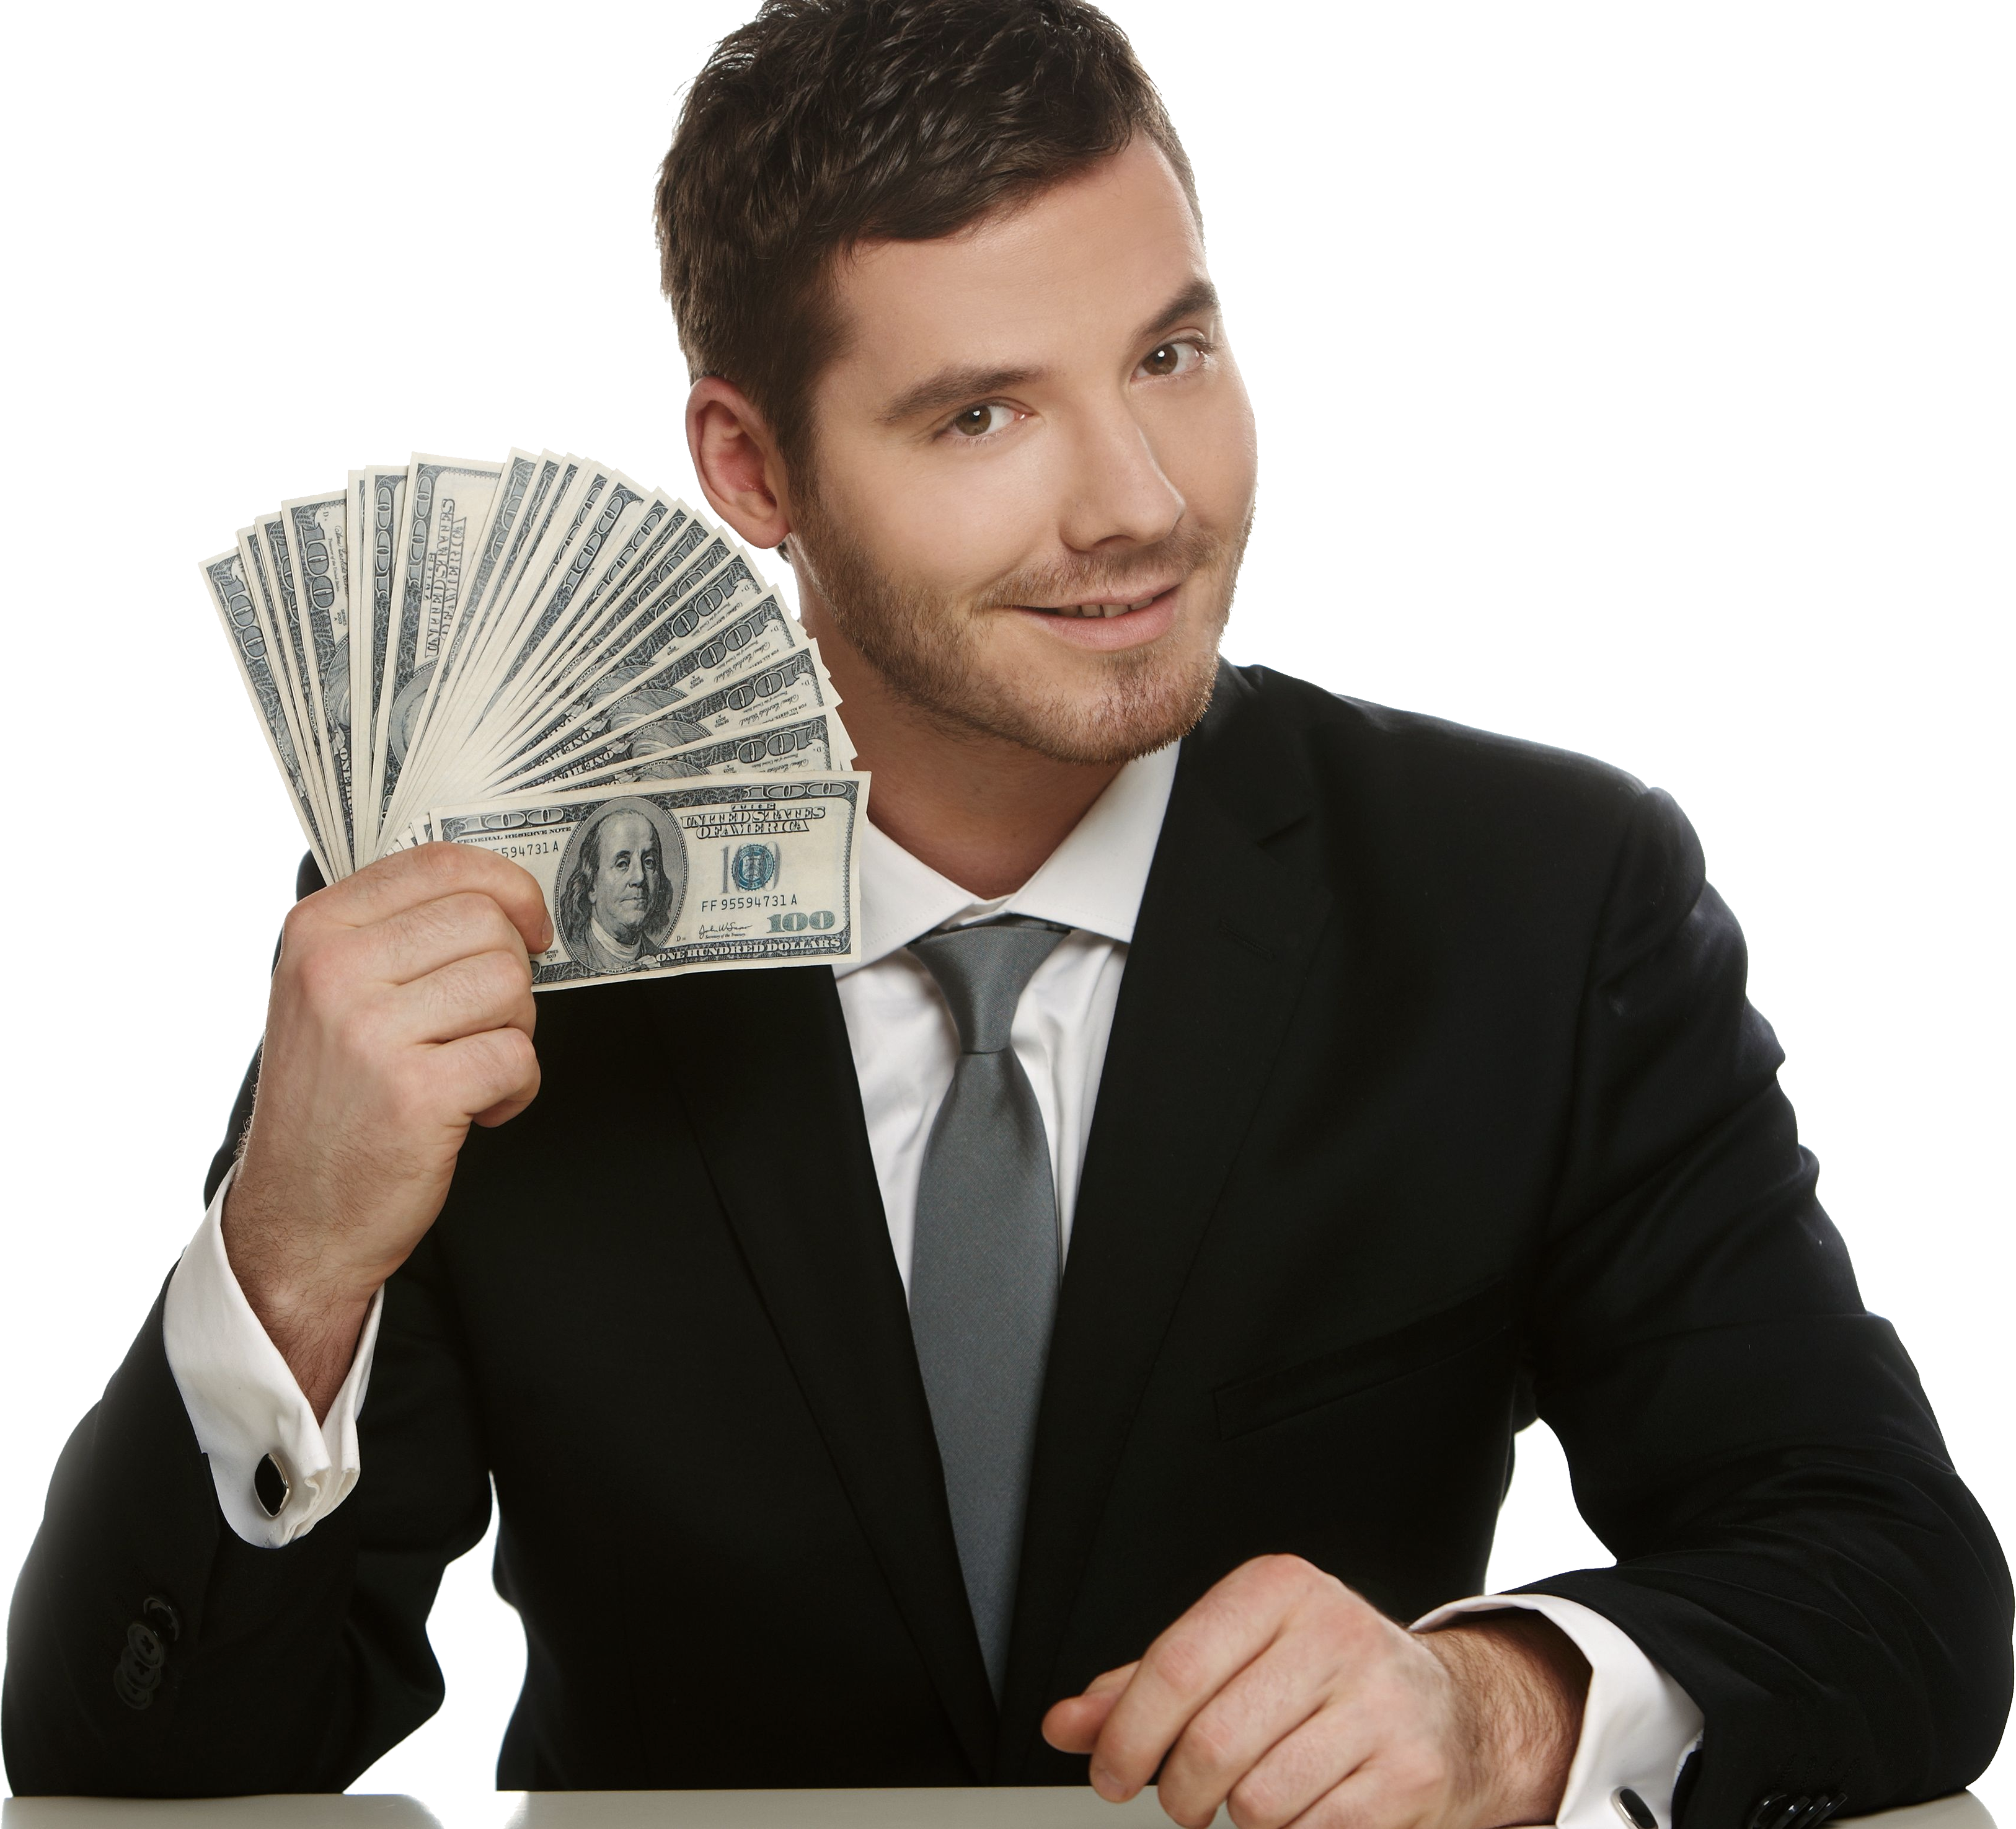 Businessman on the phone png. Business man image purepng